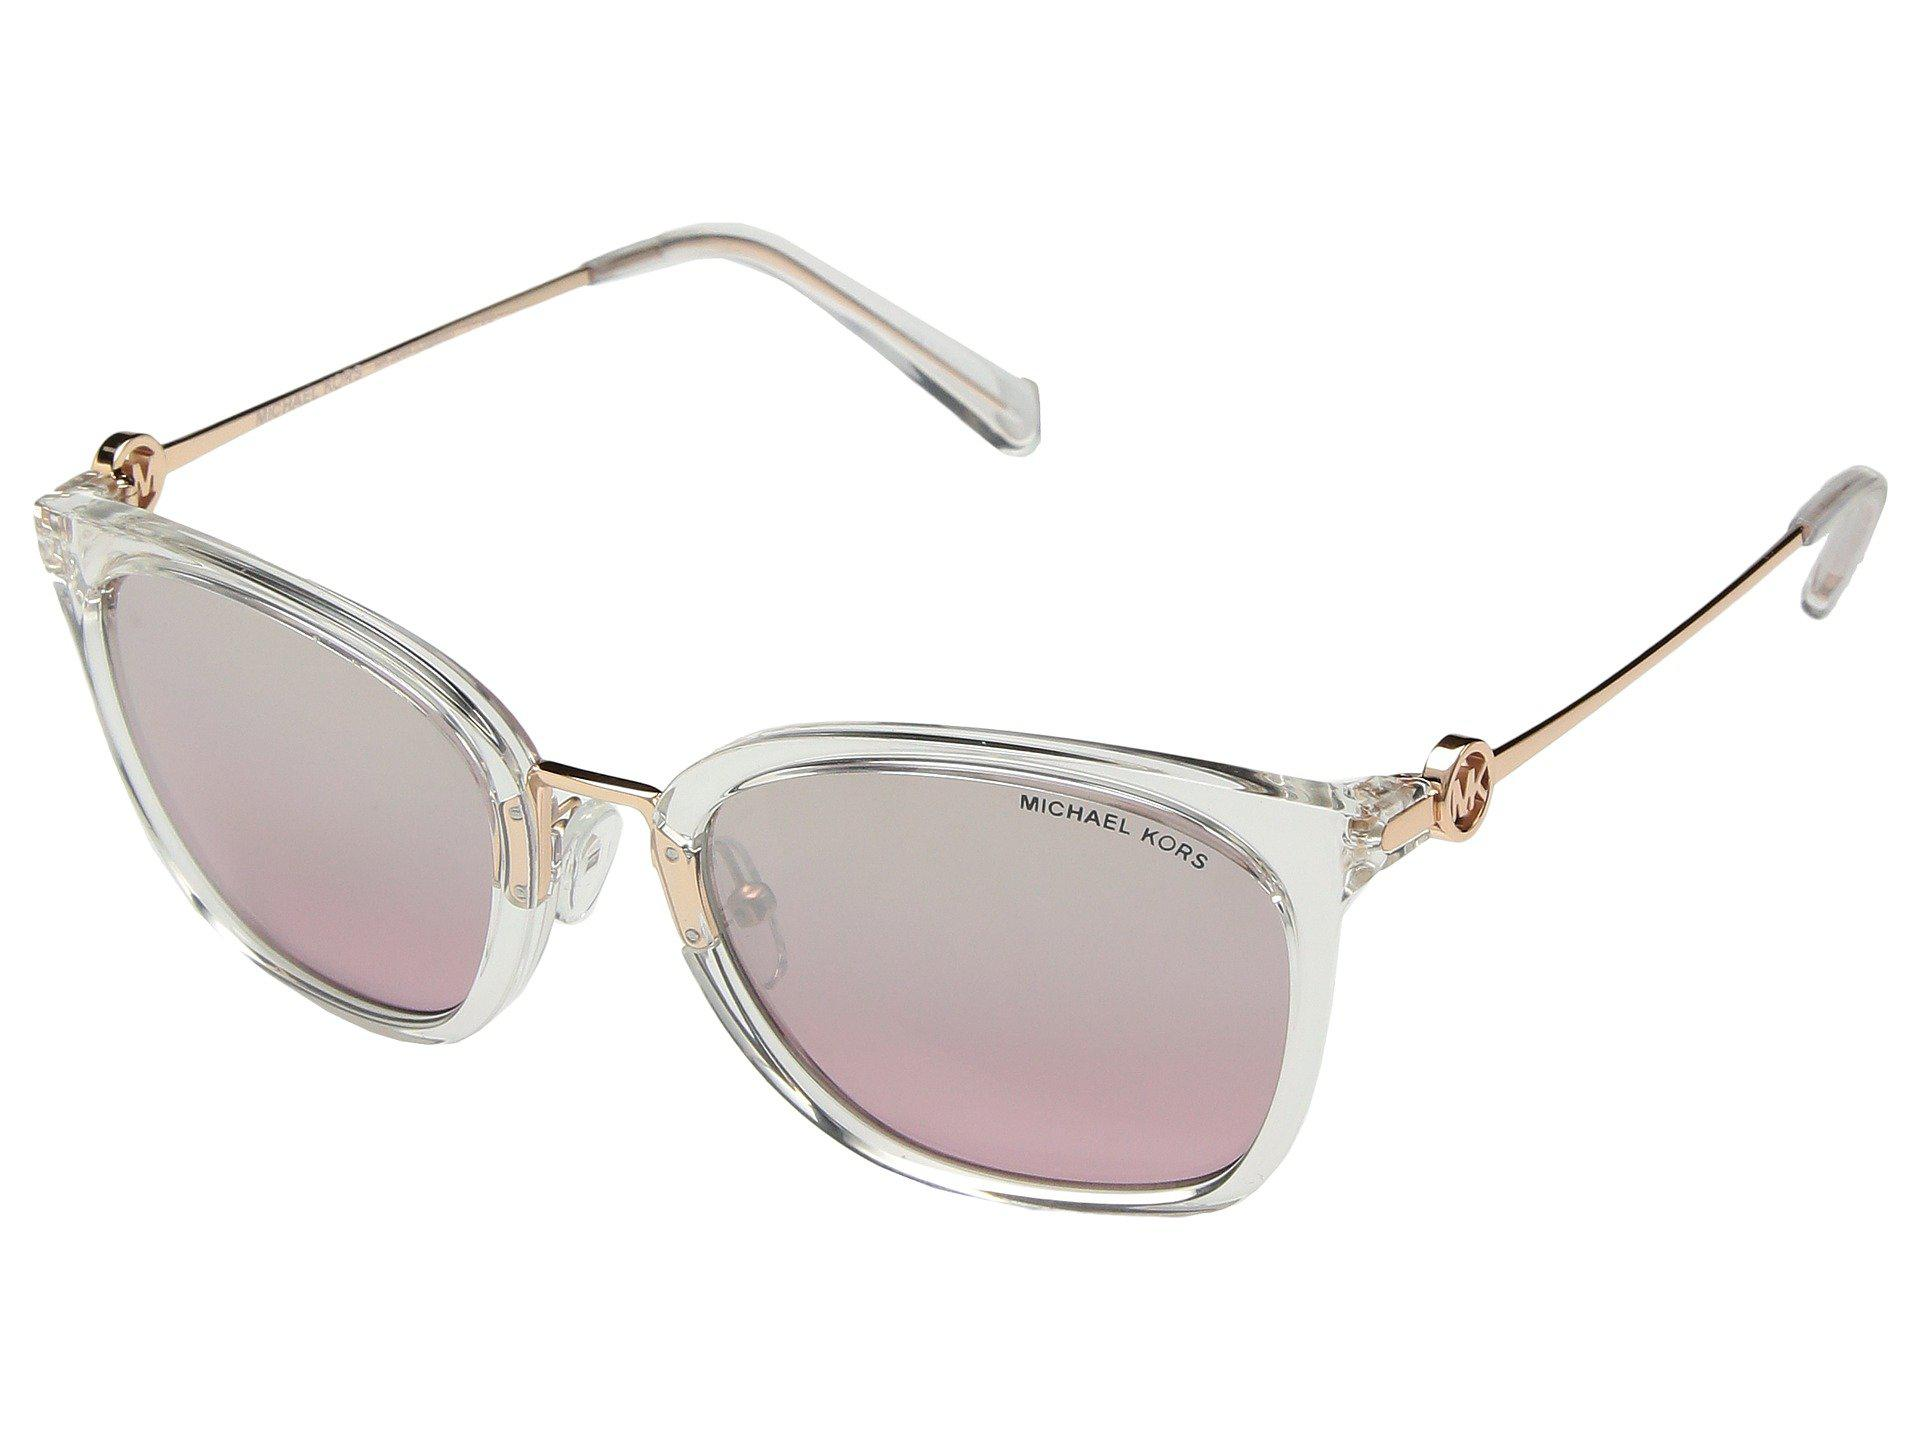 472cd4e9c6 Michael Kors 0mk2064 53mm (clear Crystal grey Pink Flash) Fashion ...